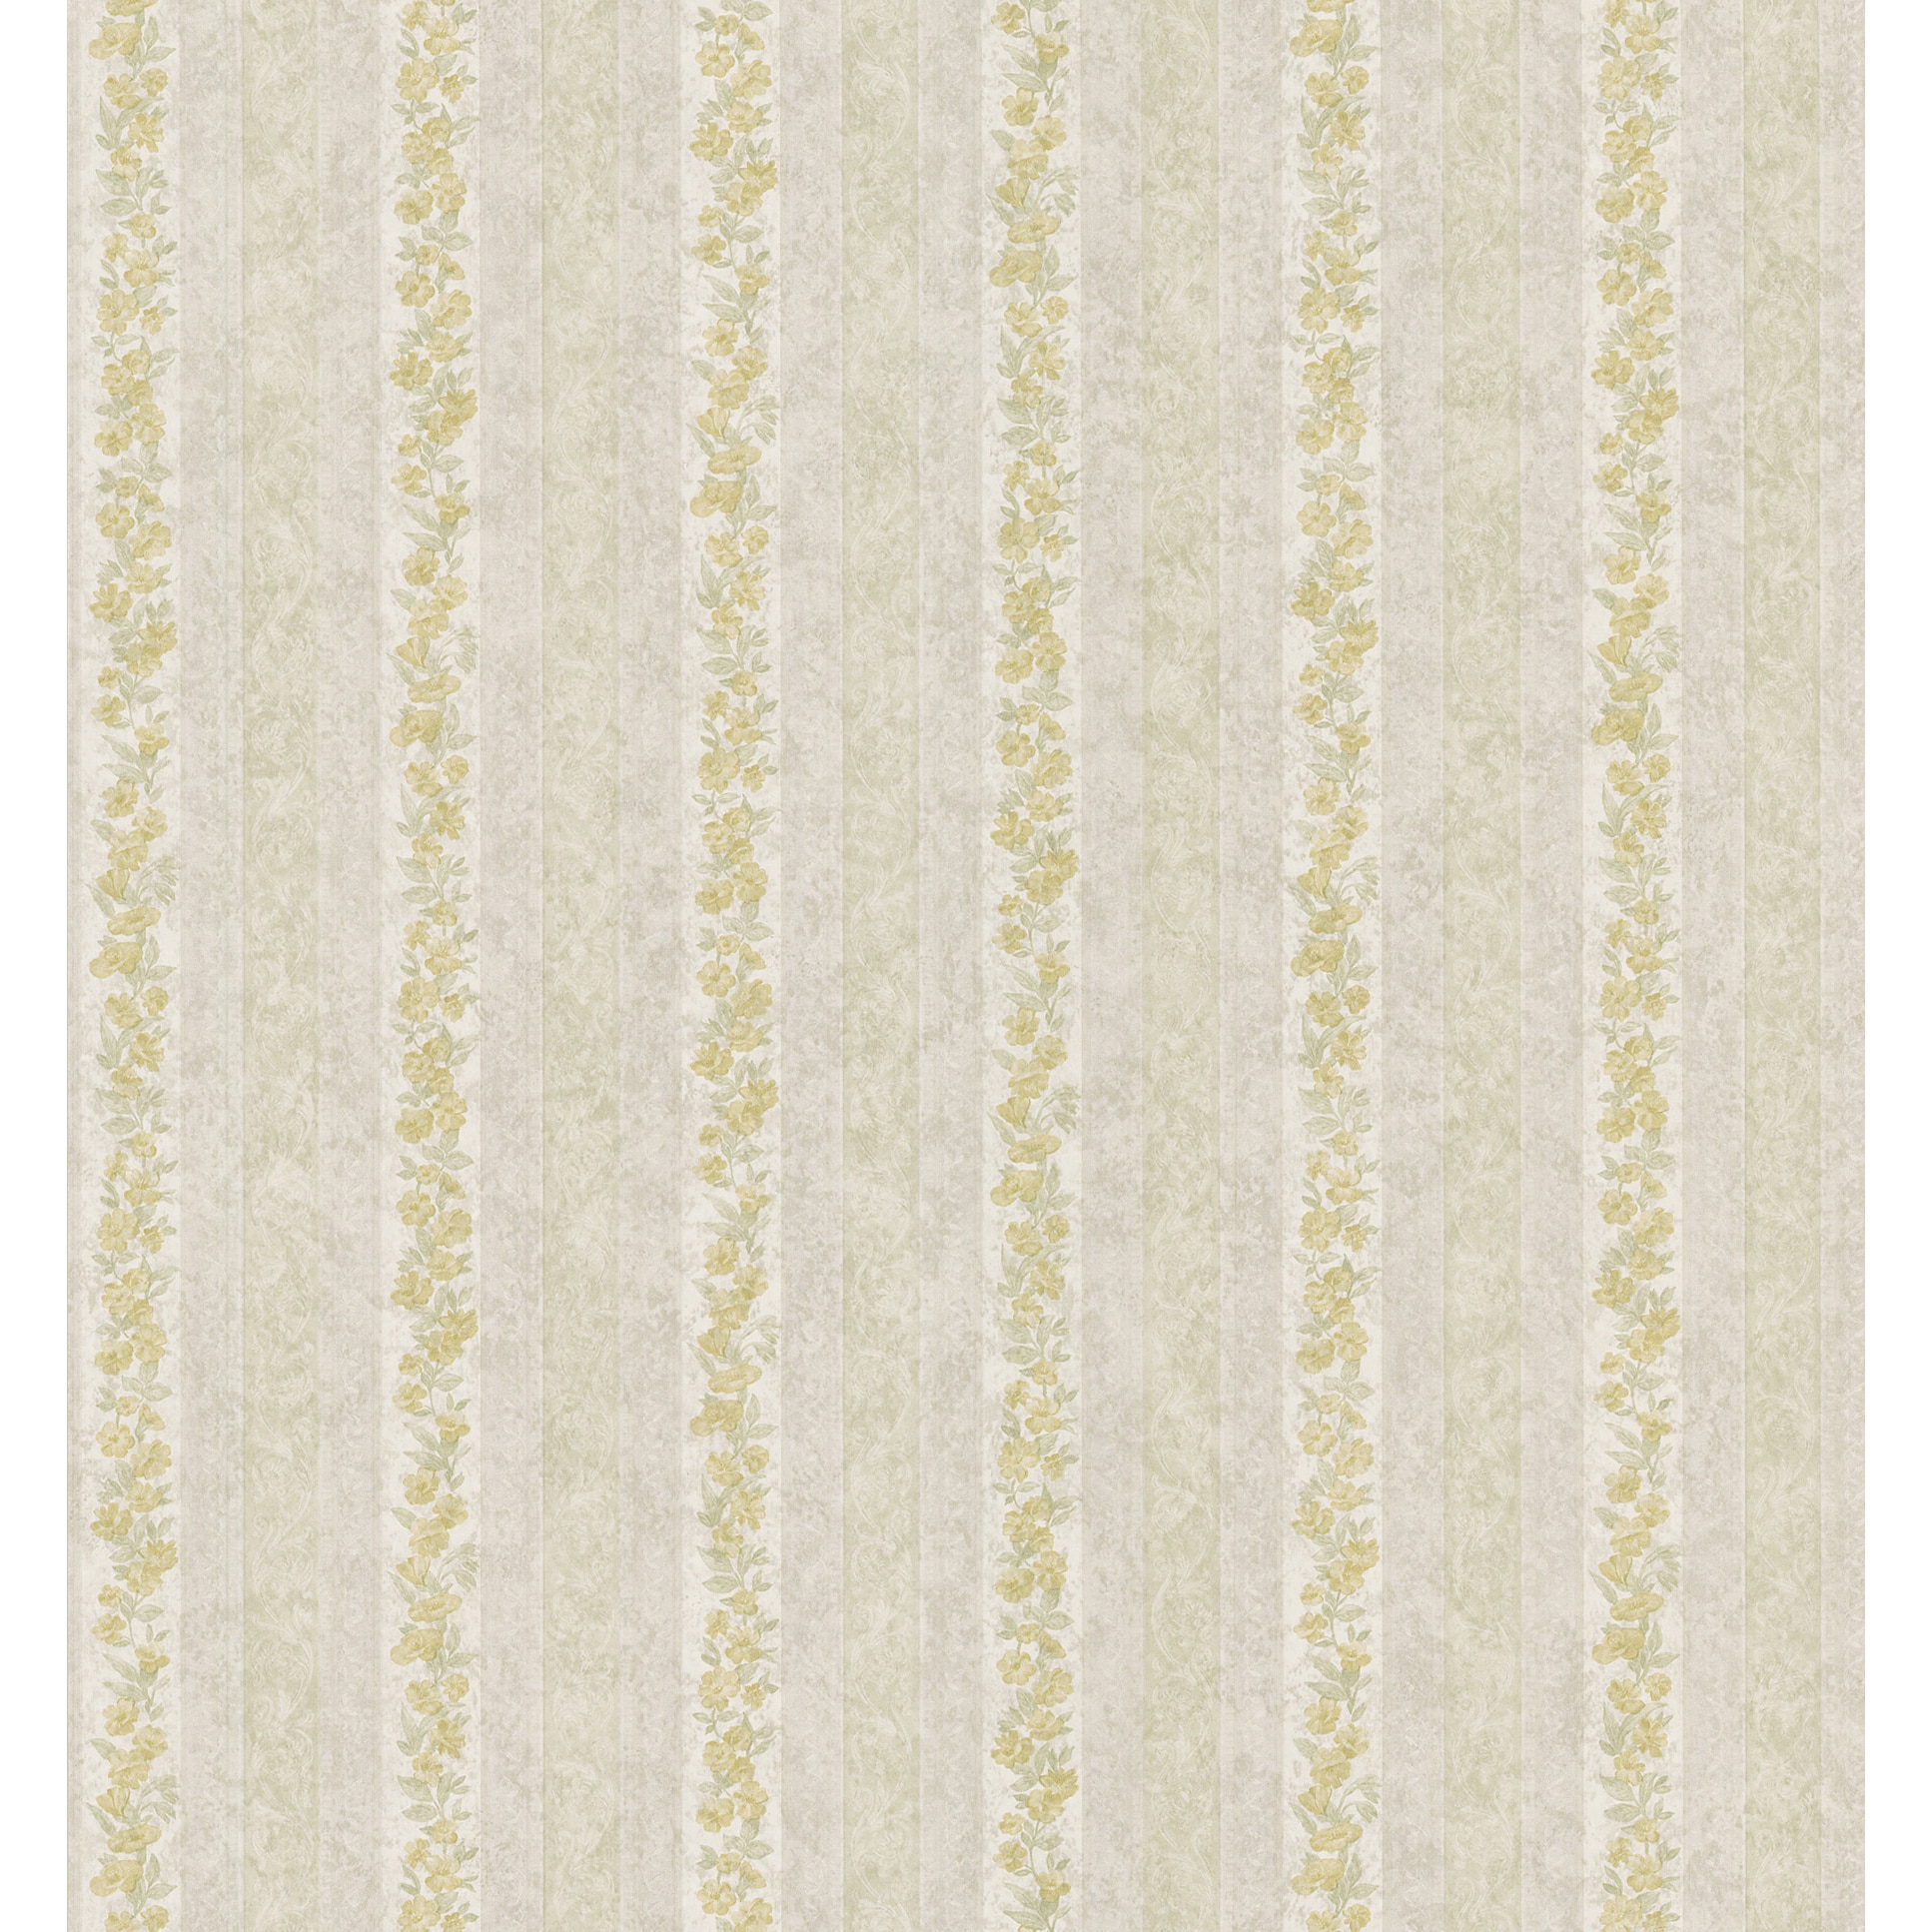 Shop Neutral Floral Stripe Border Wallpaper Free Shipping On